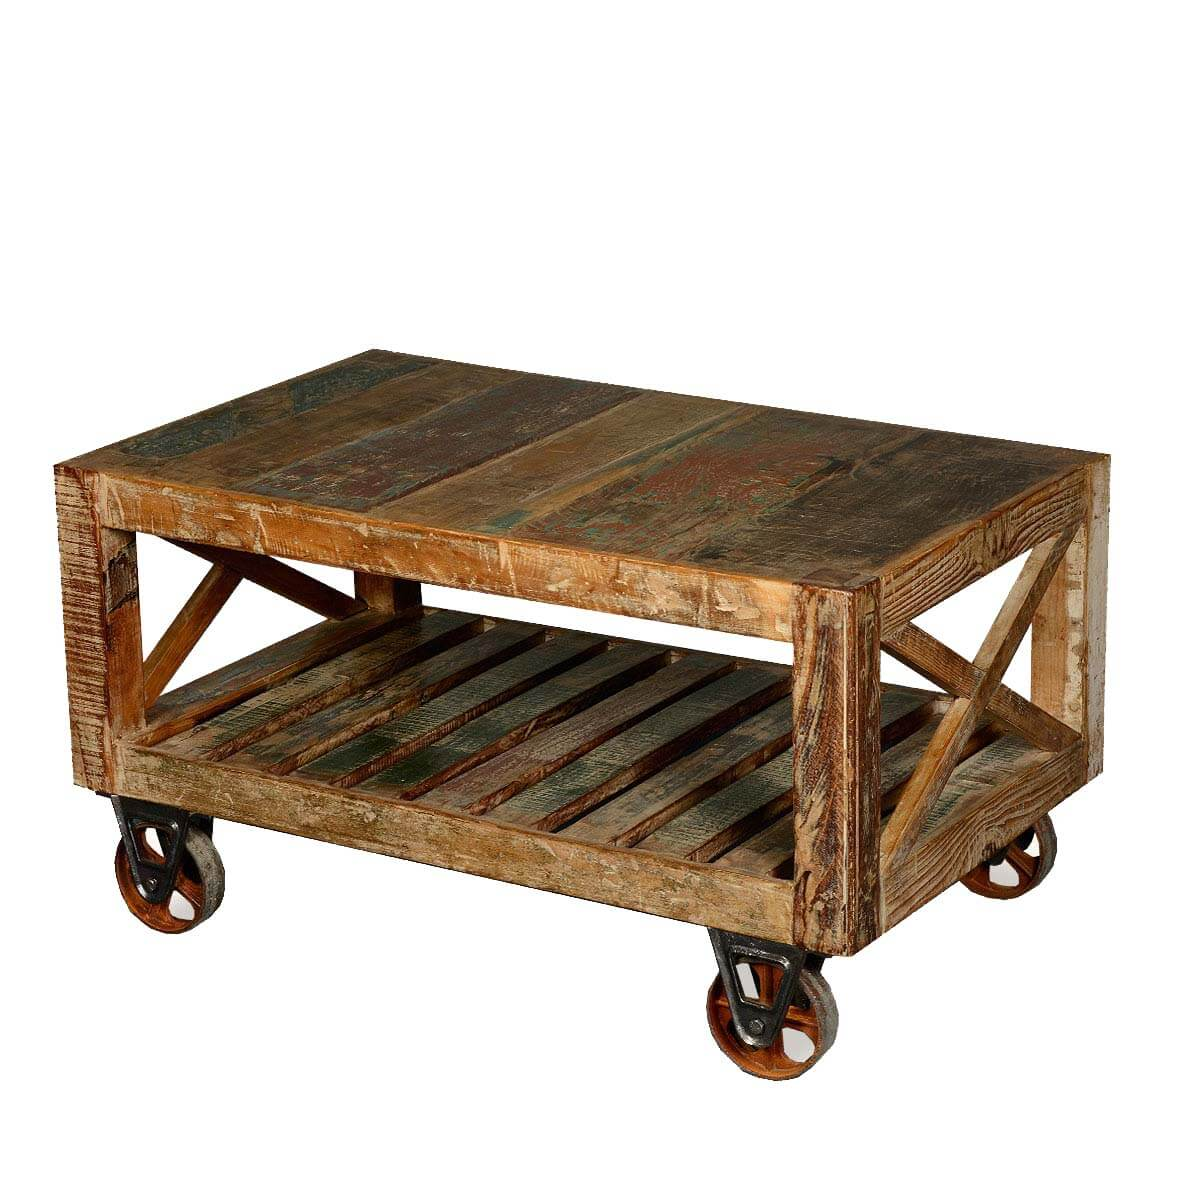 Industrial rustic reclaimed wood iron rolling double x coffee table Coffee tables rustic